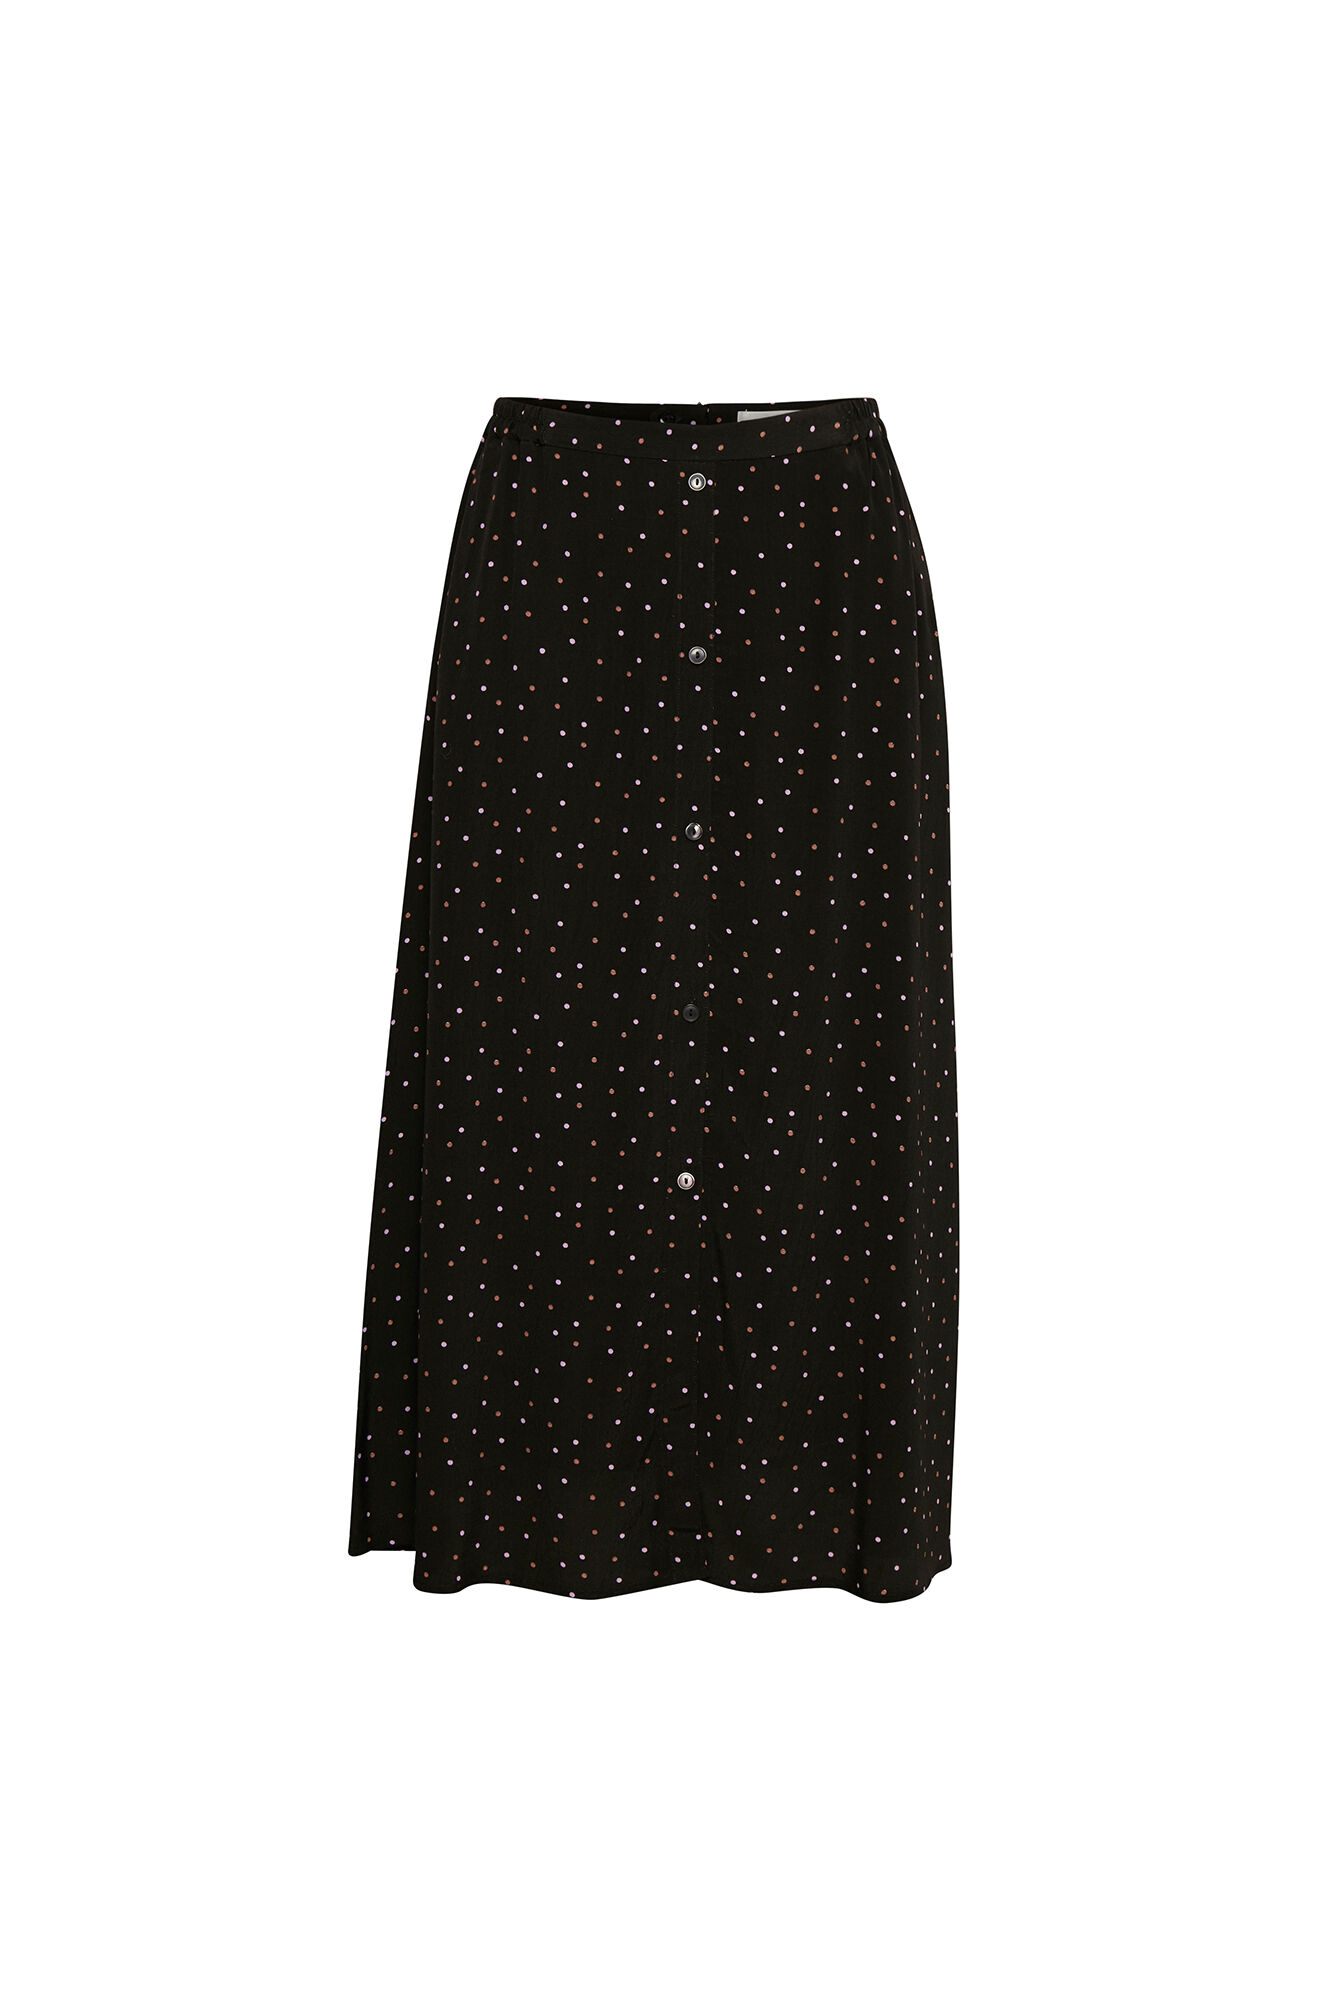 Harper Skirt 10902236, BLACK/PURPLE DOT